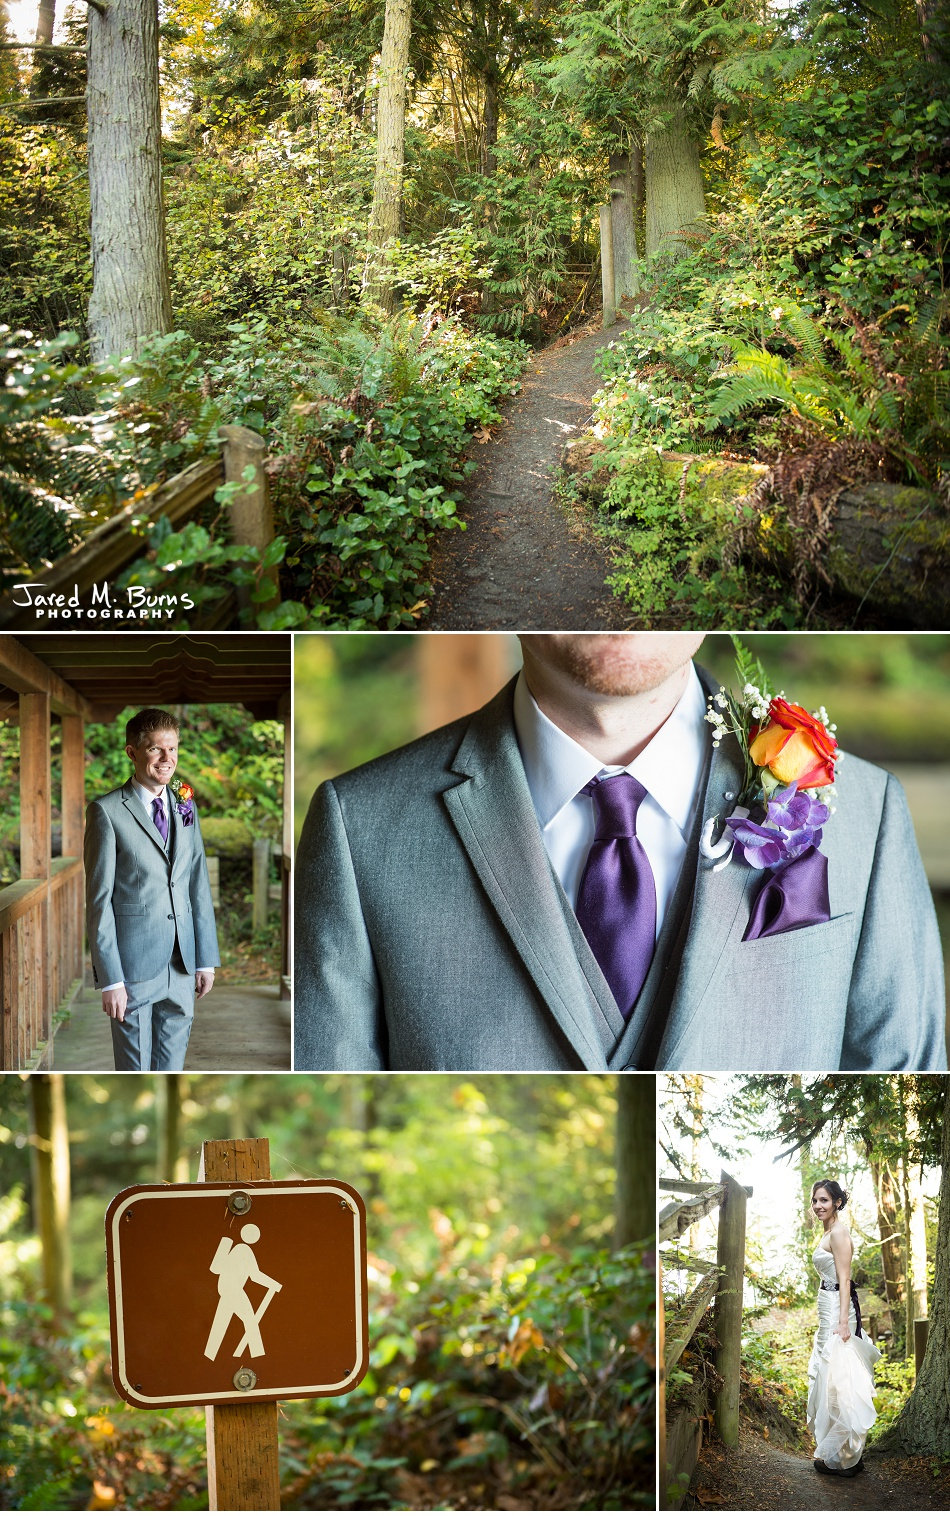 Kyle & Stephanie - Echo Falls and Washington Ferry Wedding Photographer - Jared M. Burns Photography 1